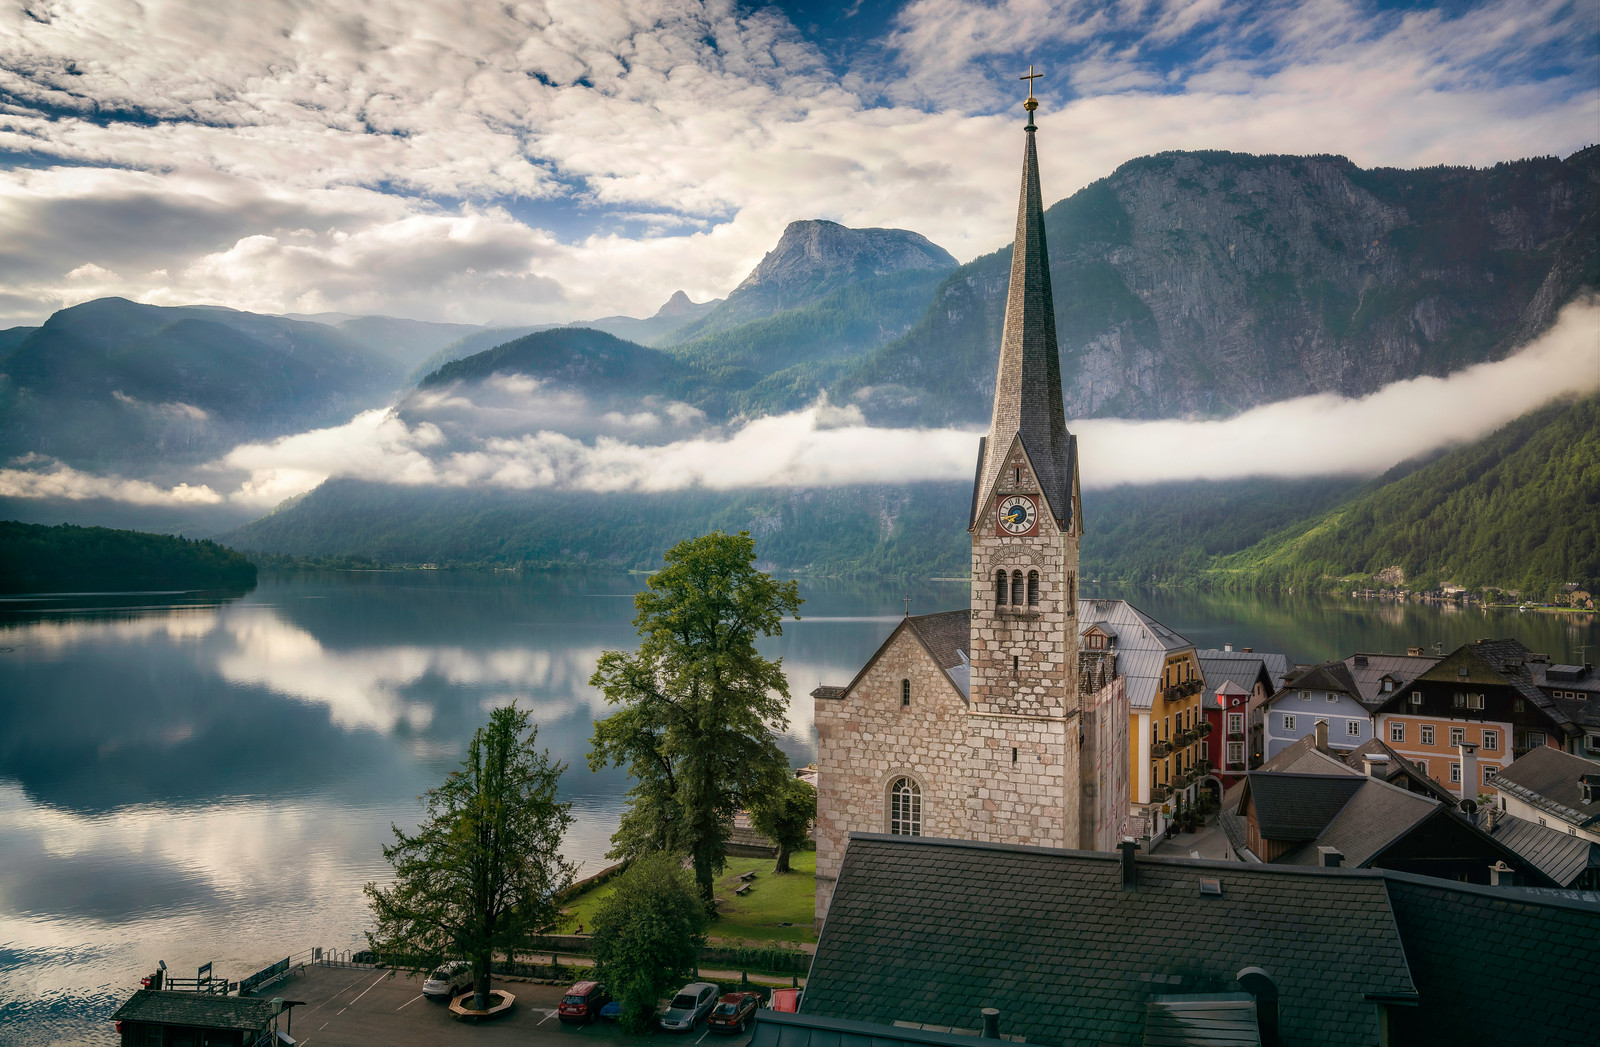 Misty Morning in Hallstatt Austria